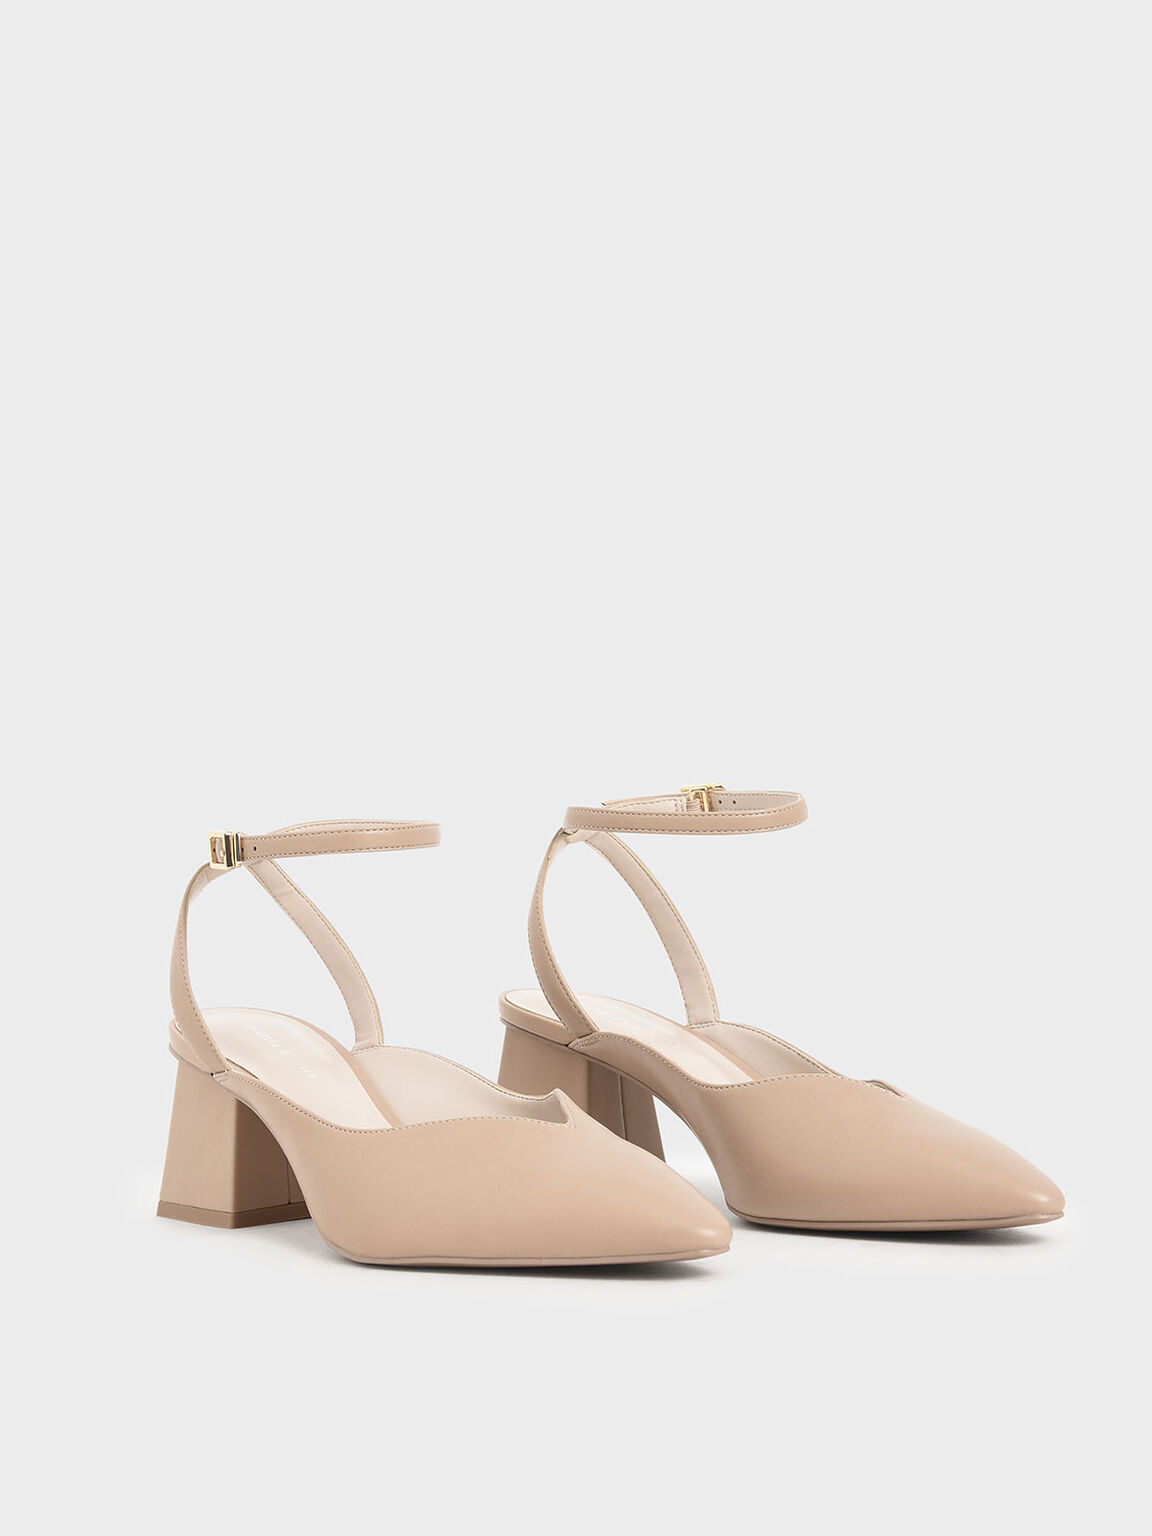 Sweetheart-Cut Pumps, Nude, hi-res